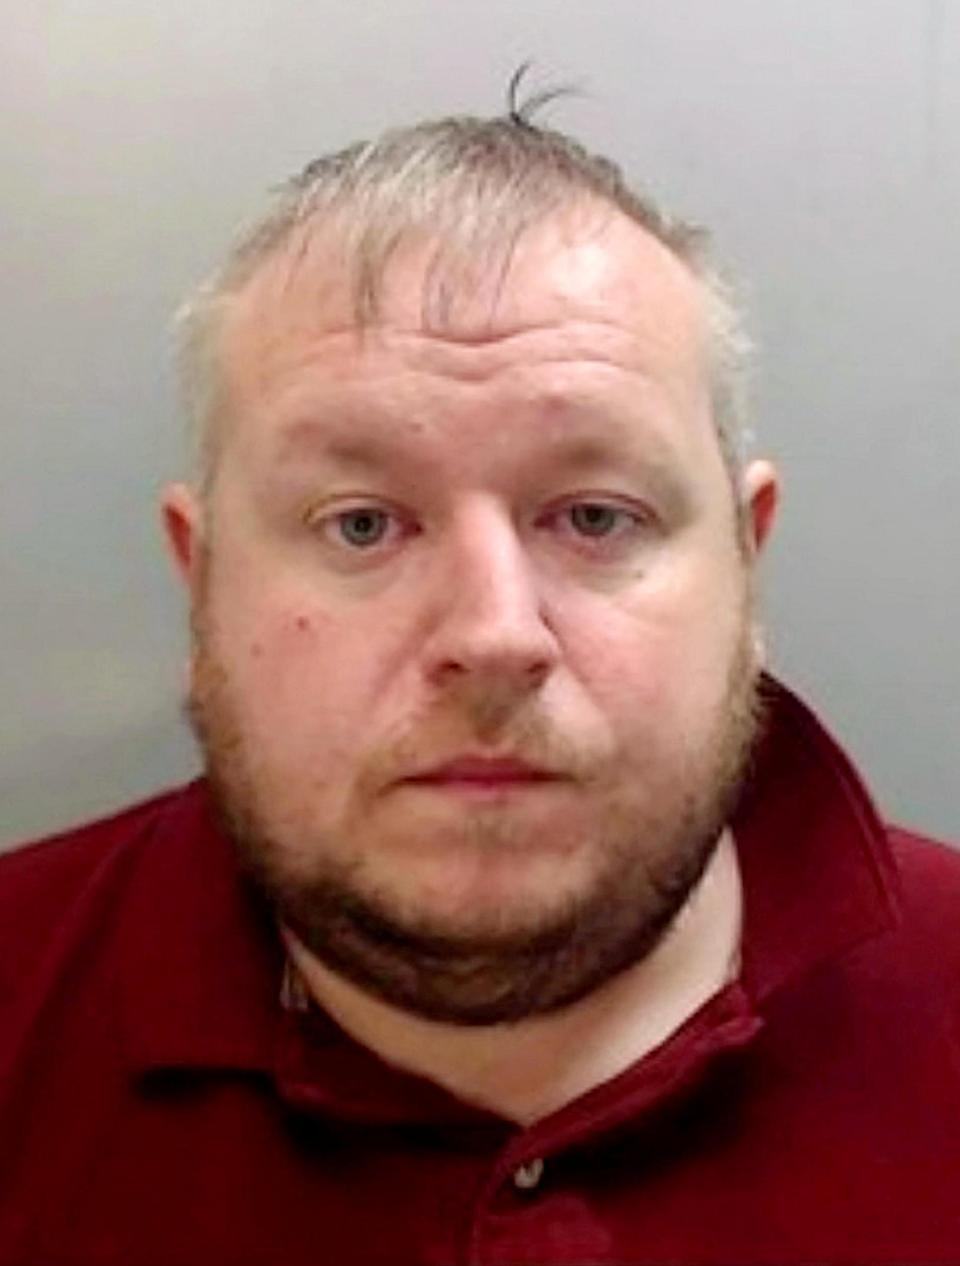 Teaching assistant Carl Jones, 38, has been jailed for three-and-a-half years after grooming a boy via Instagram. (SWNS)